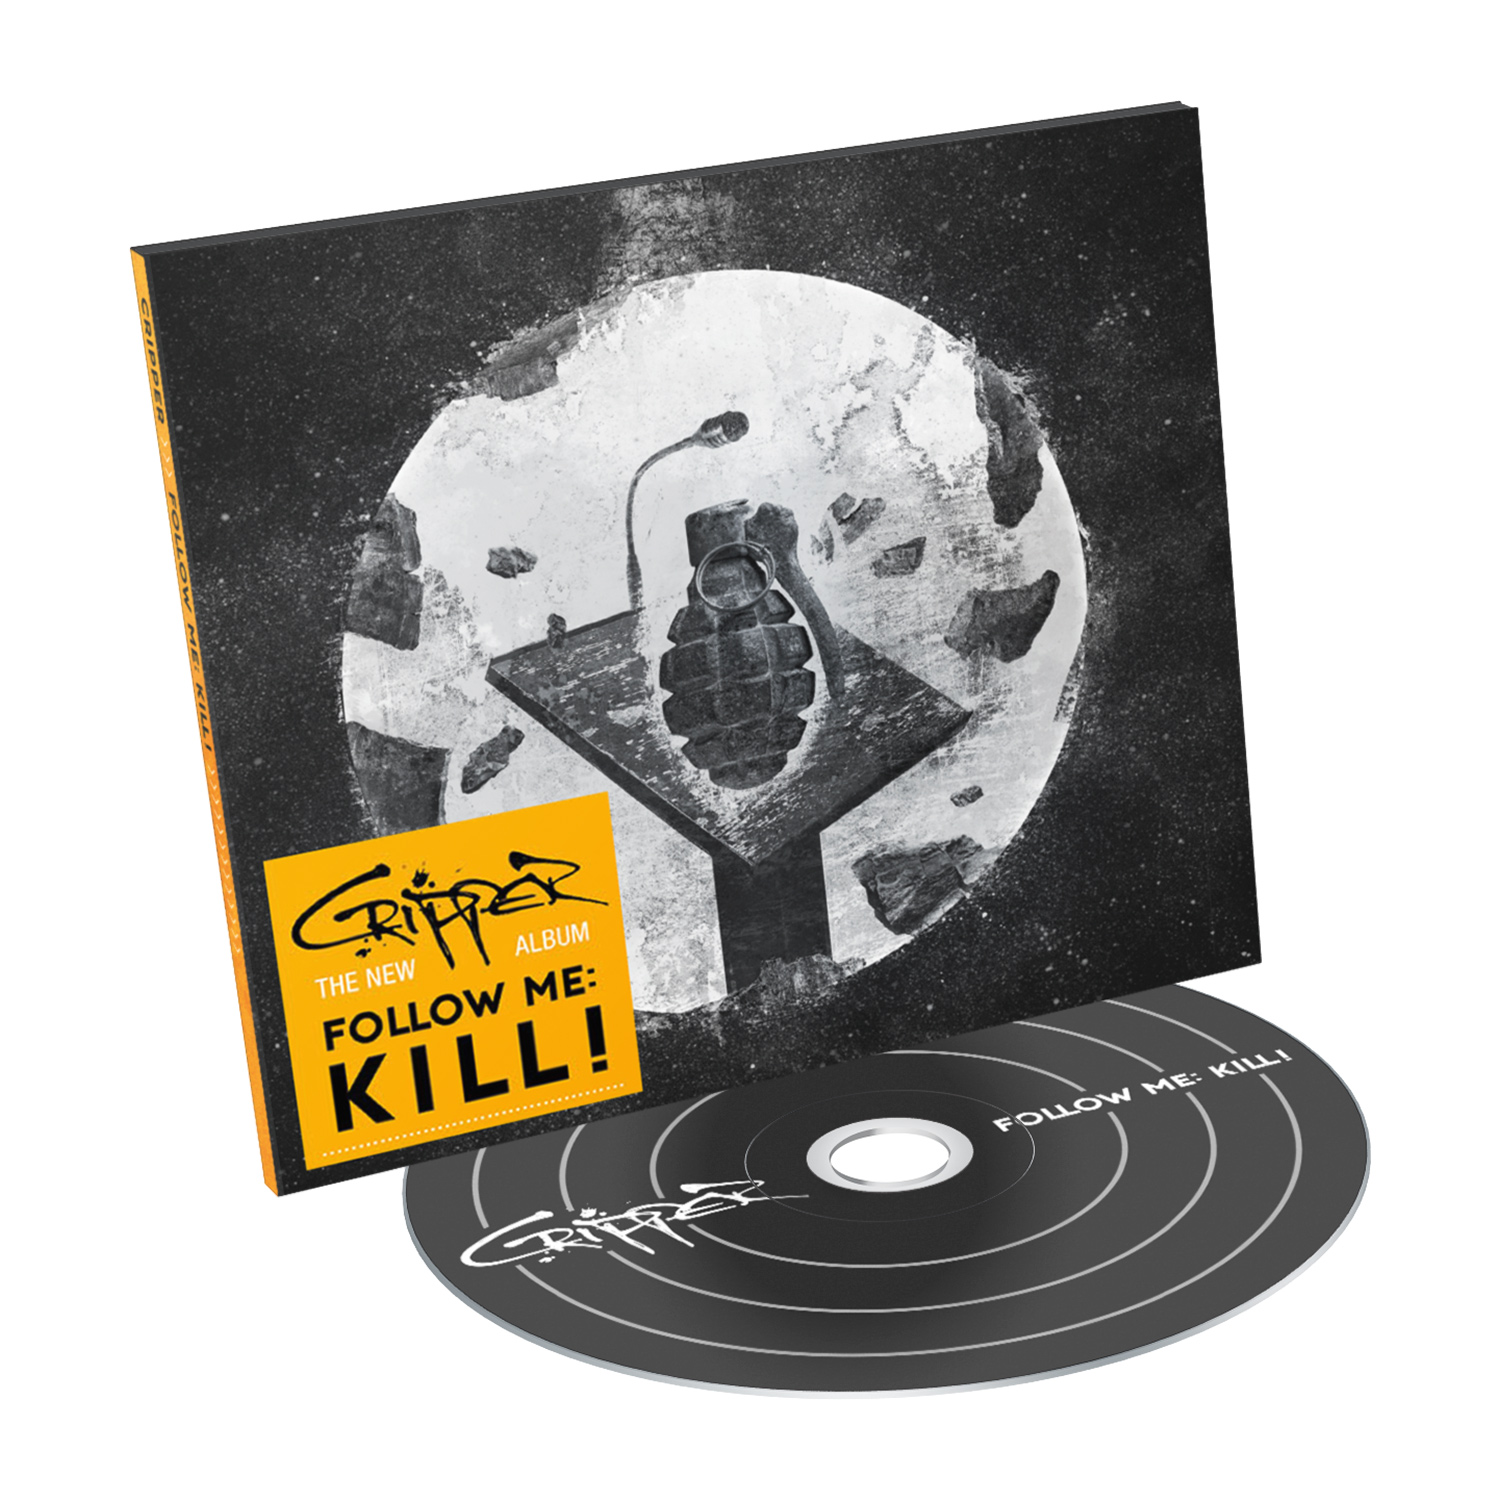 Follow Me: Kill! - CD/LP Bundle